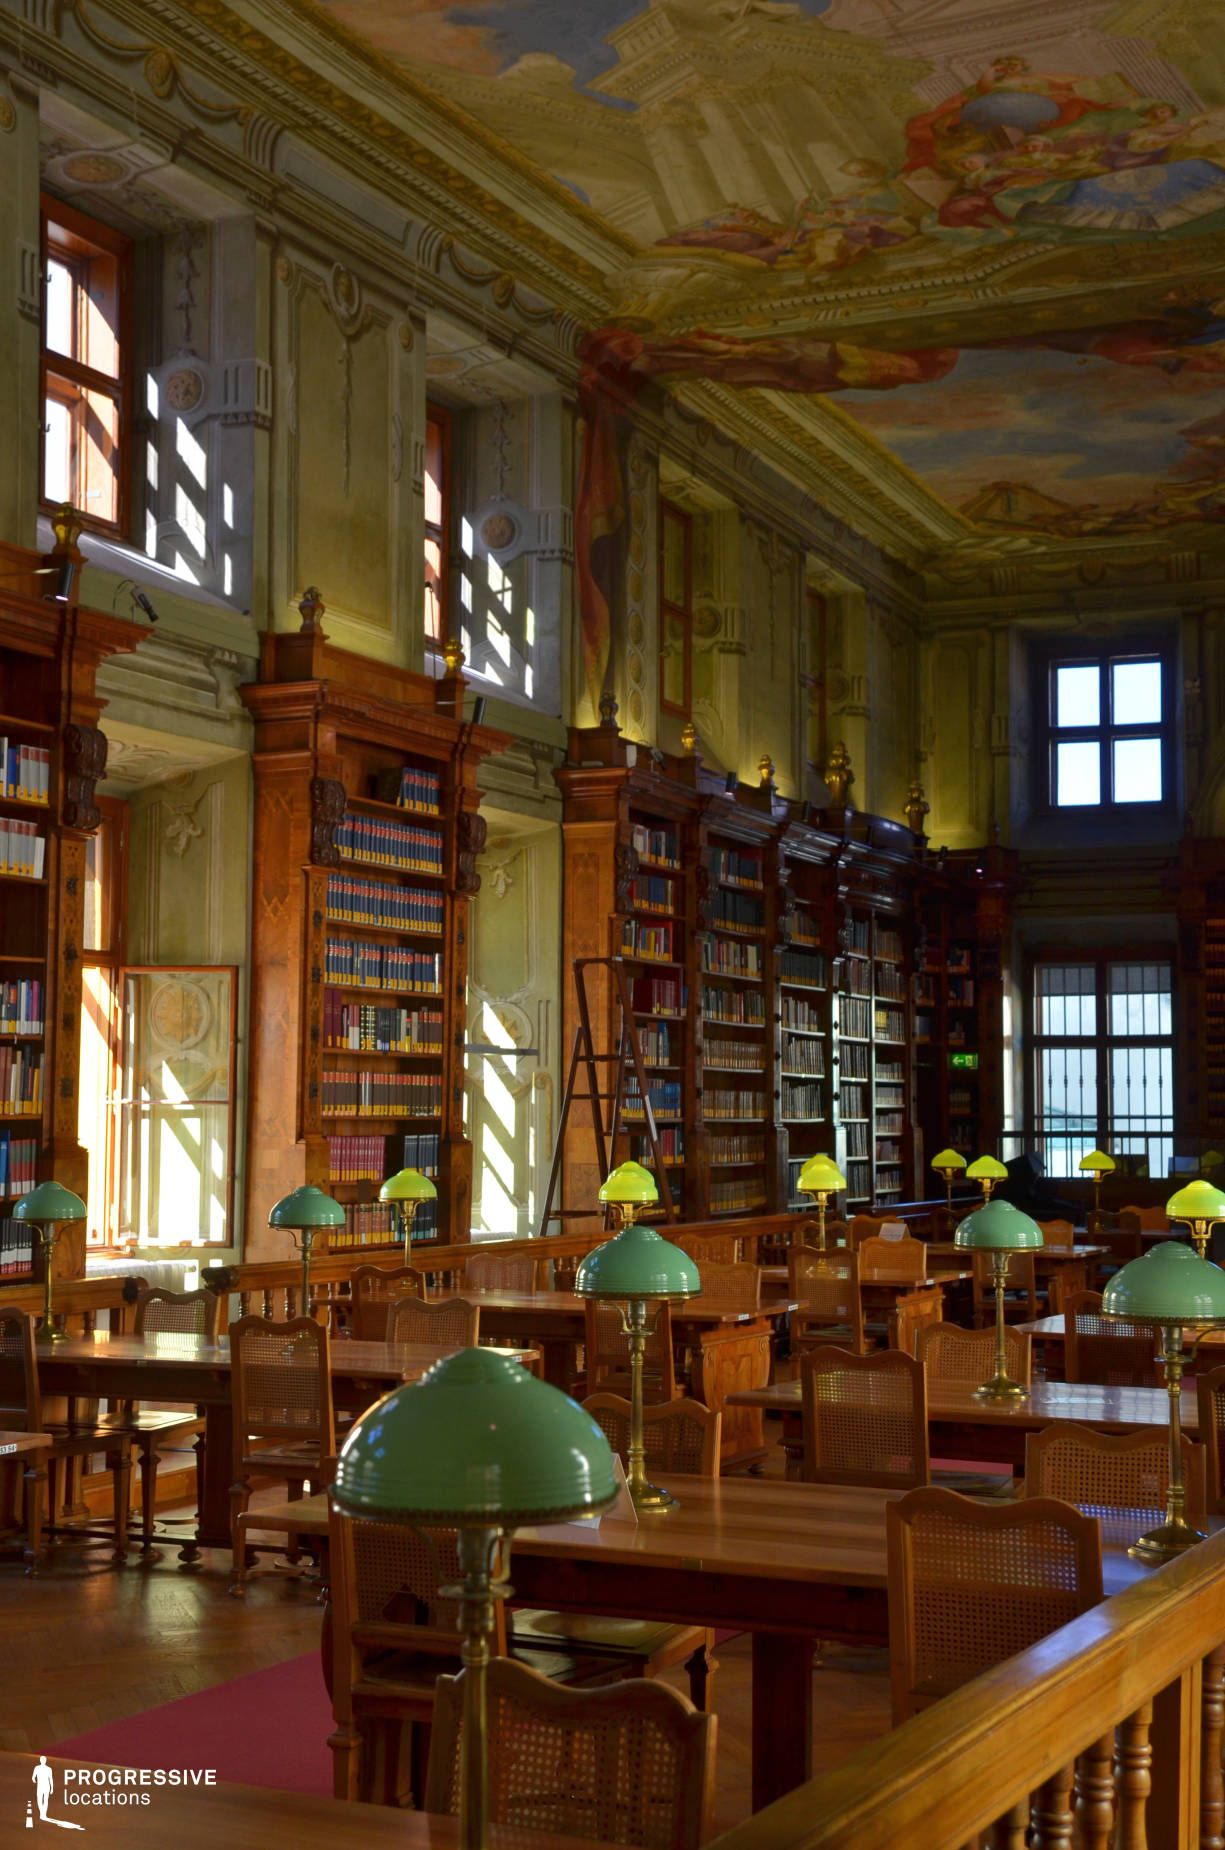 Locations in Austria: Augustinus Reading Room, National Library (Detail)